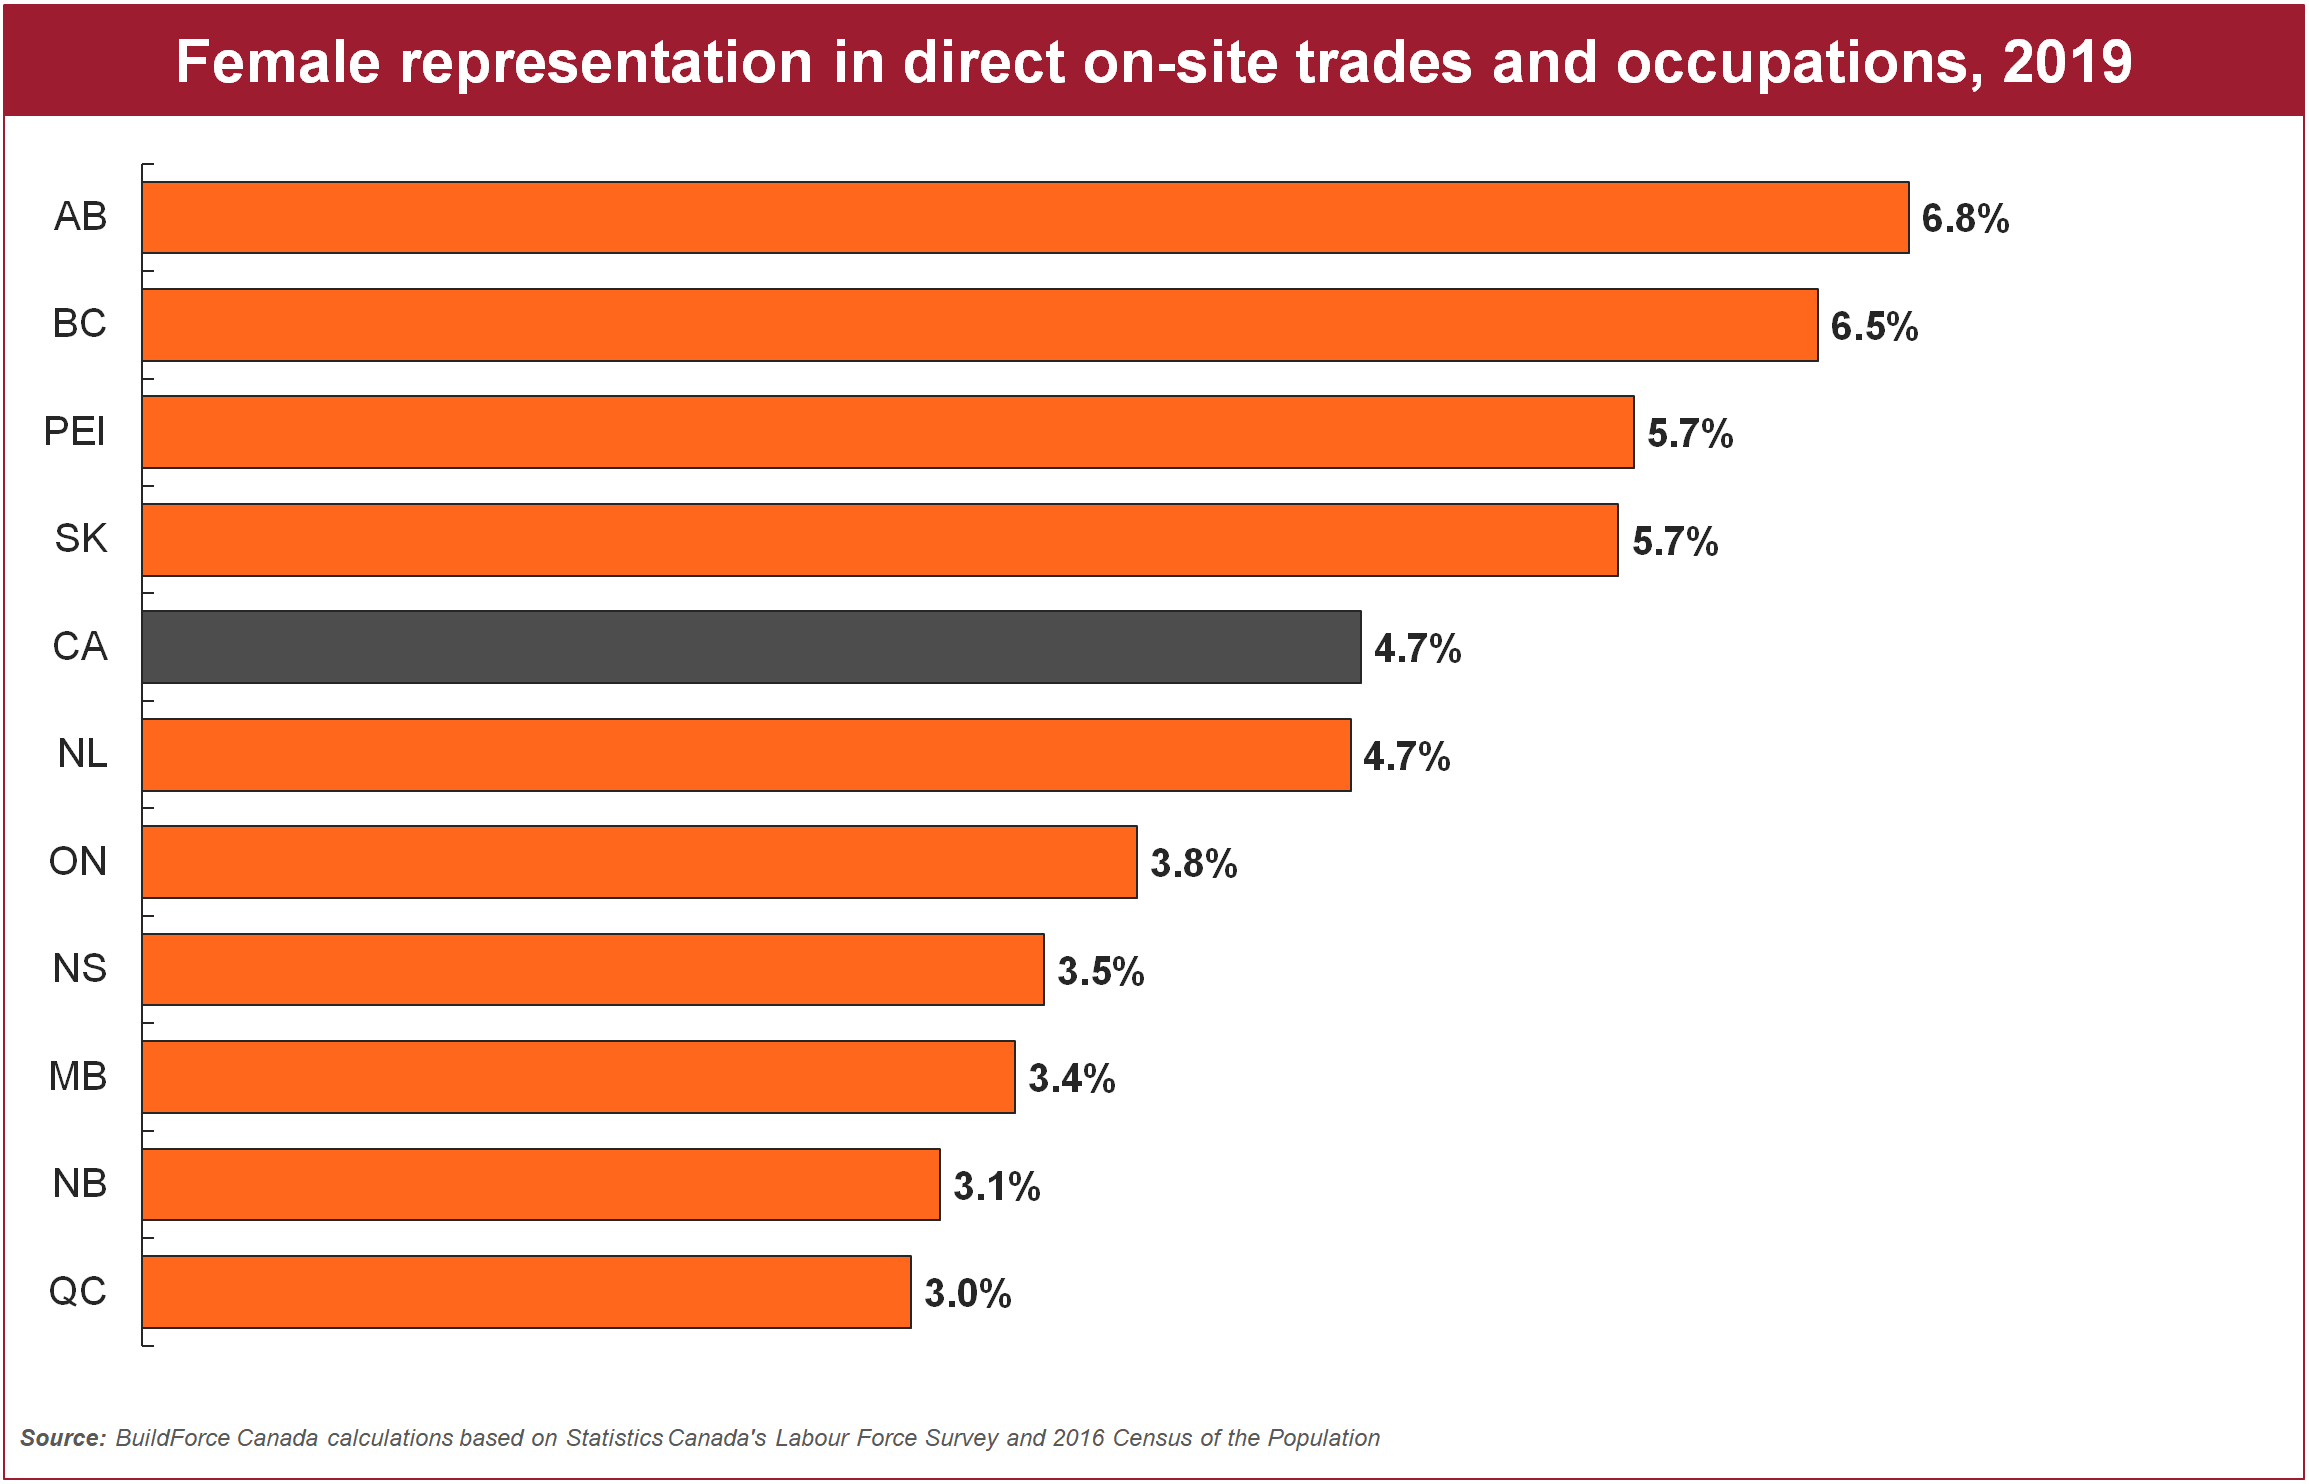 Bar graph showing Female representation in direct on-site trades and occupations in the Canadian construction industry, 2019